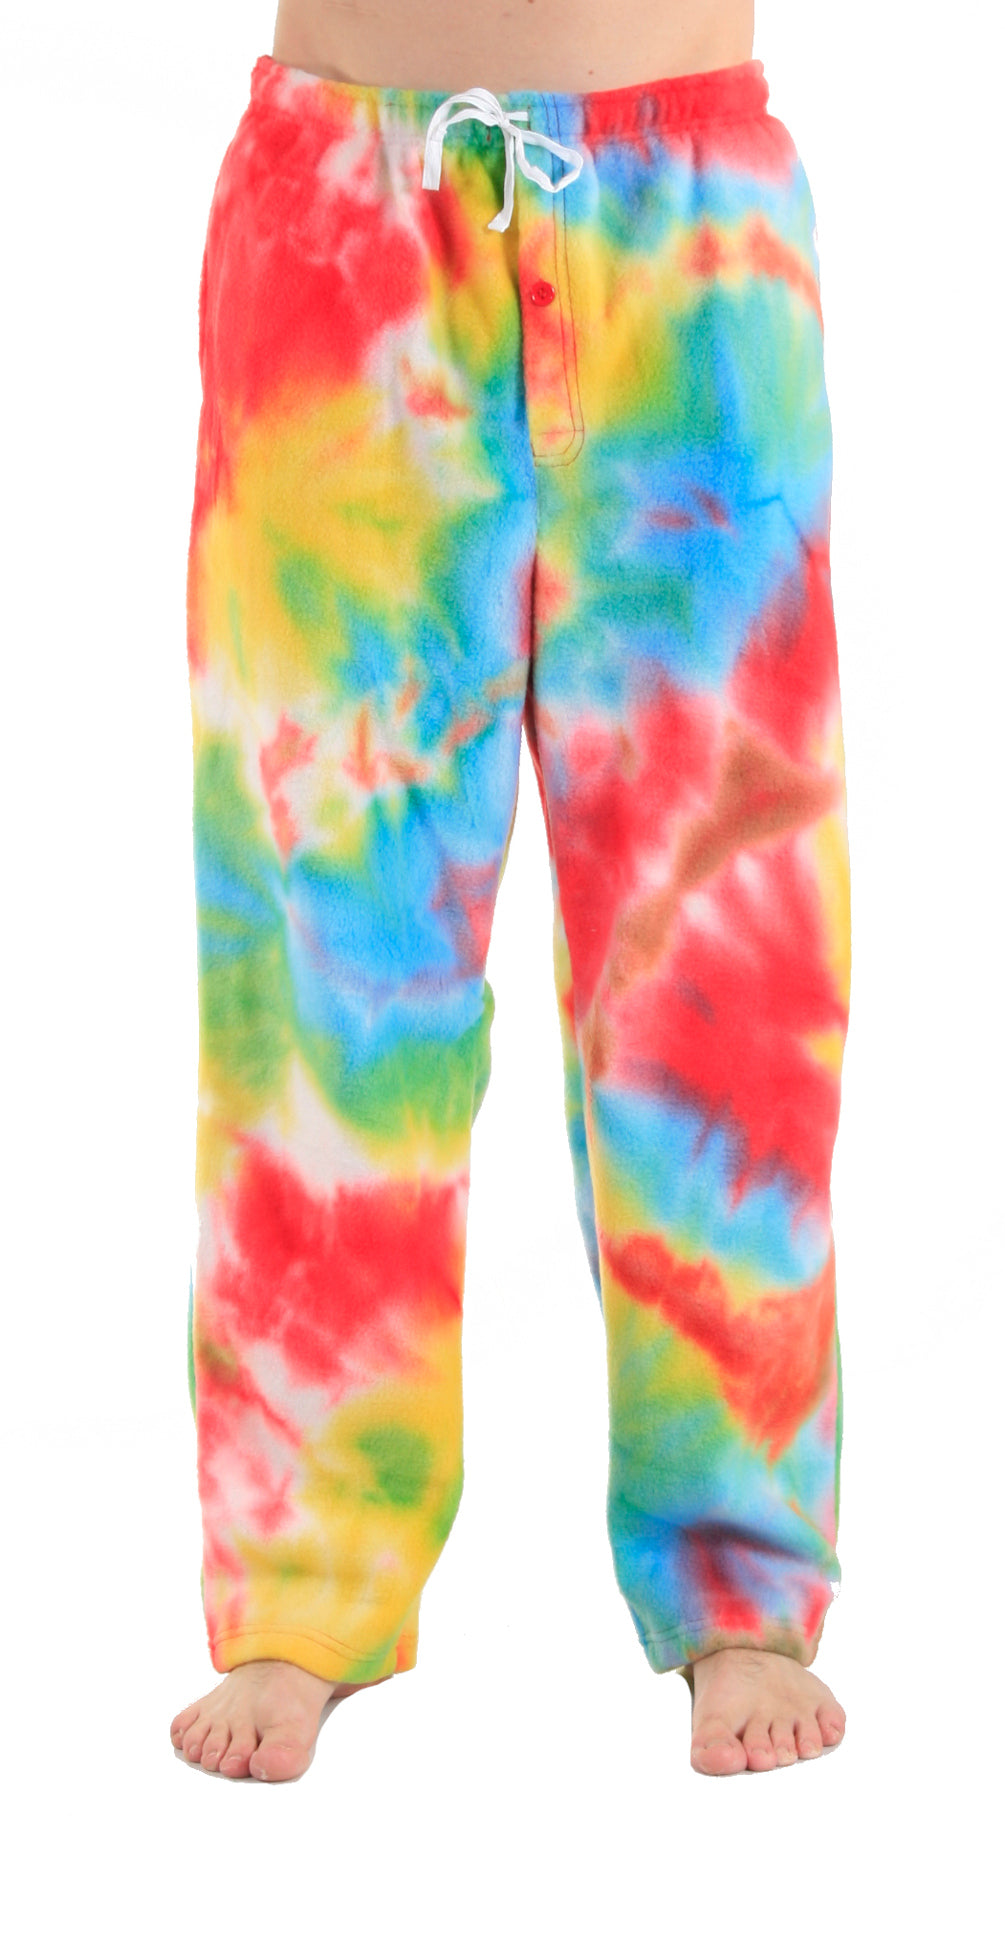 Men's Fleece Pants - Tie Dye